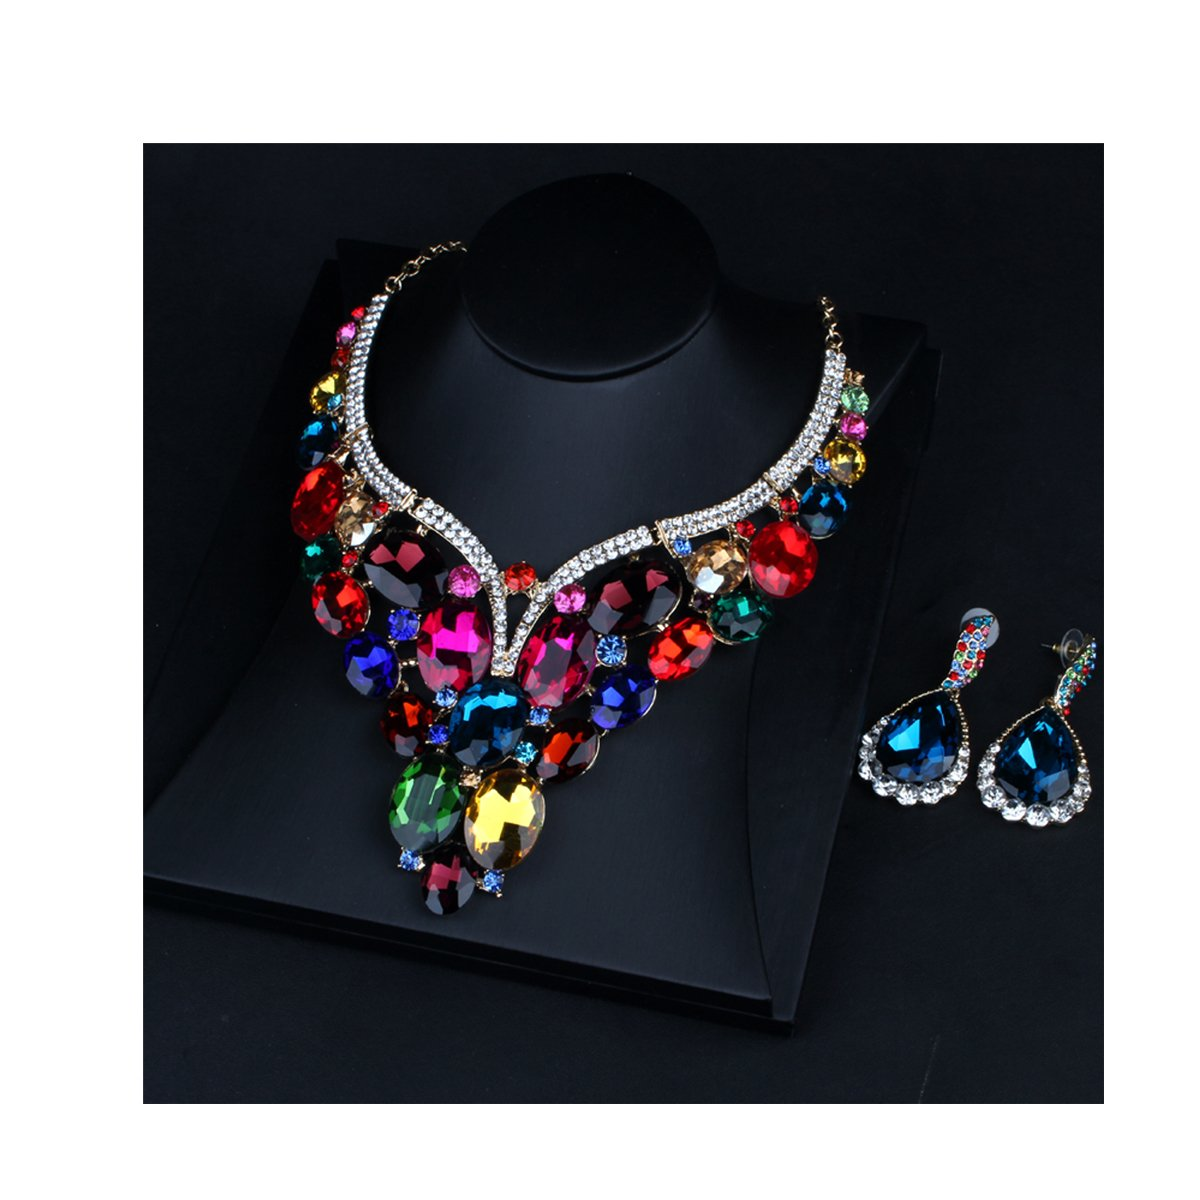 ENUUNO Costume jewelry Multi-color Crystal Choker Pendant Statement Charm Necklace and Earrings Sets Women (Multi-color, alloy)